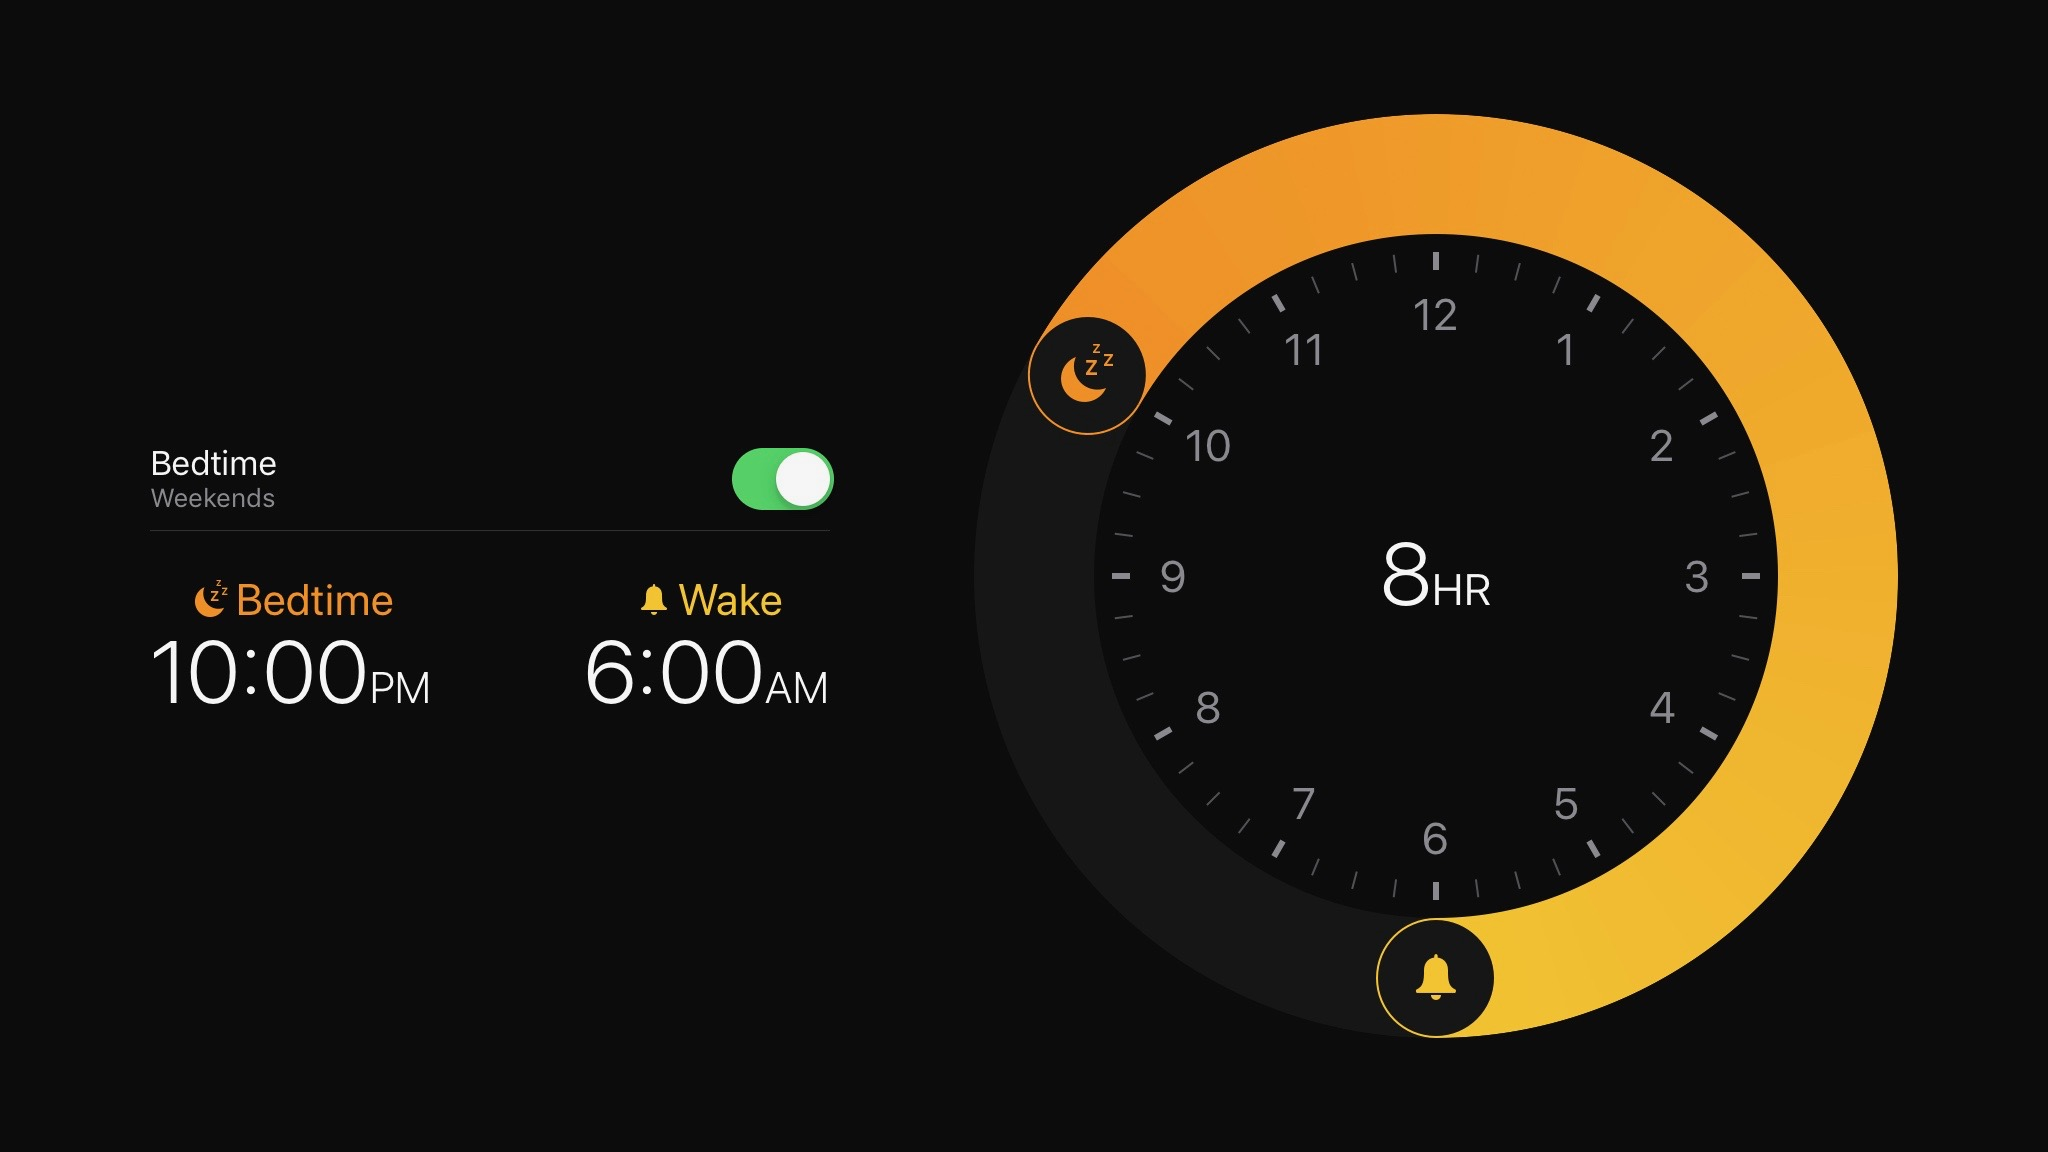 iPhone & iPad: How to setup Bedtime on iOS and get more sleep